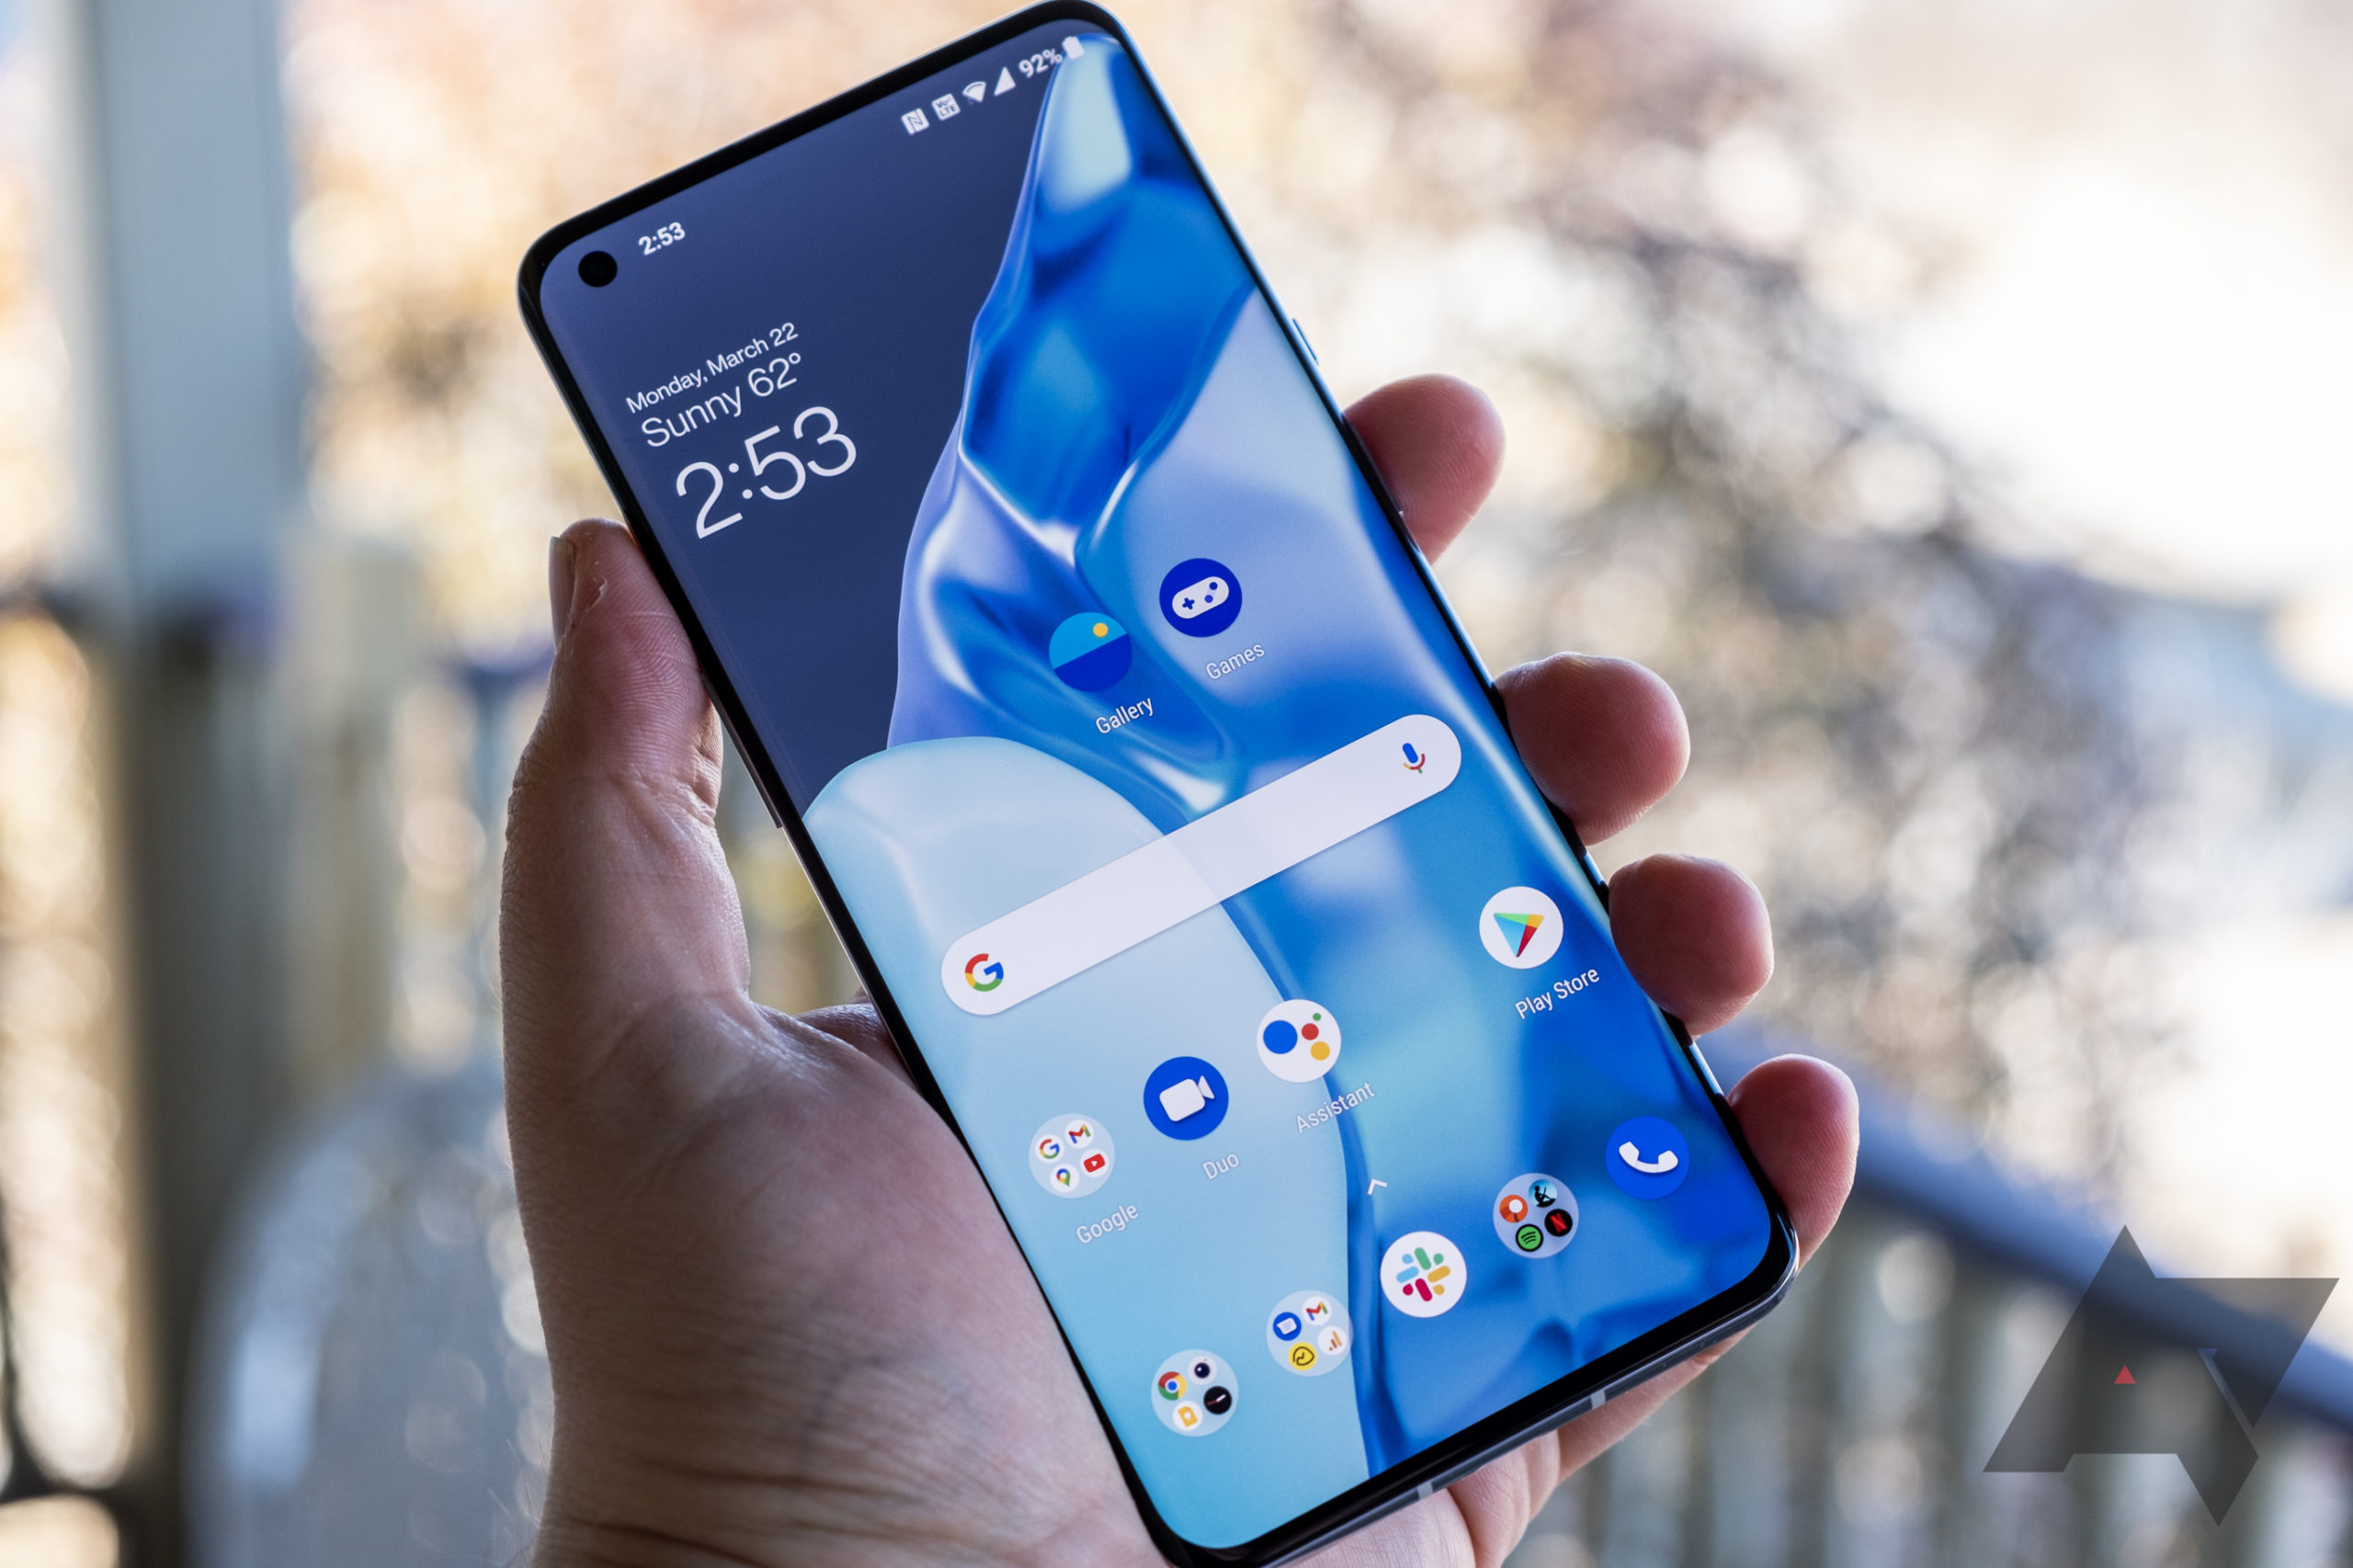 Android 12 Beta is bricking OnePlus 9 phones — here's how to fix it